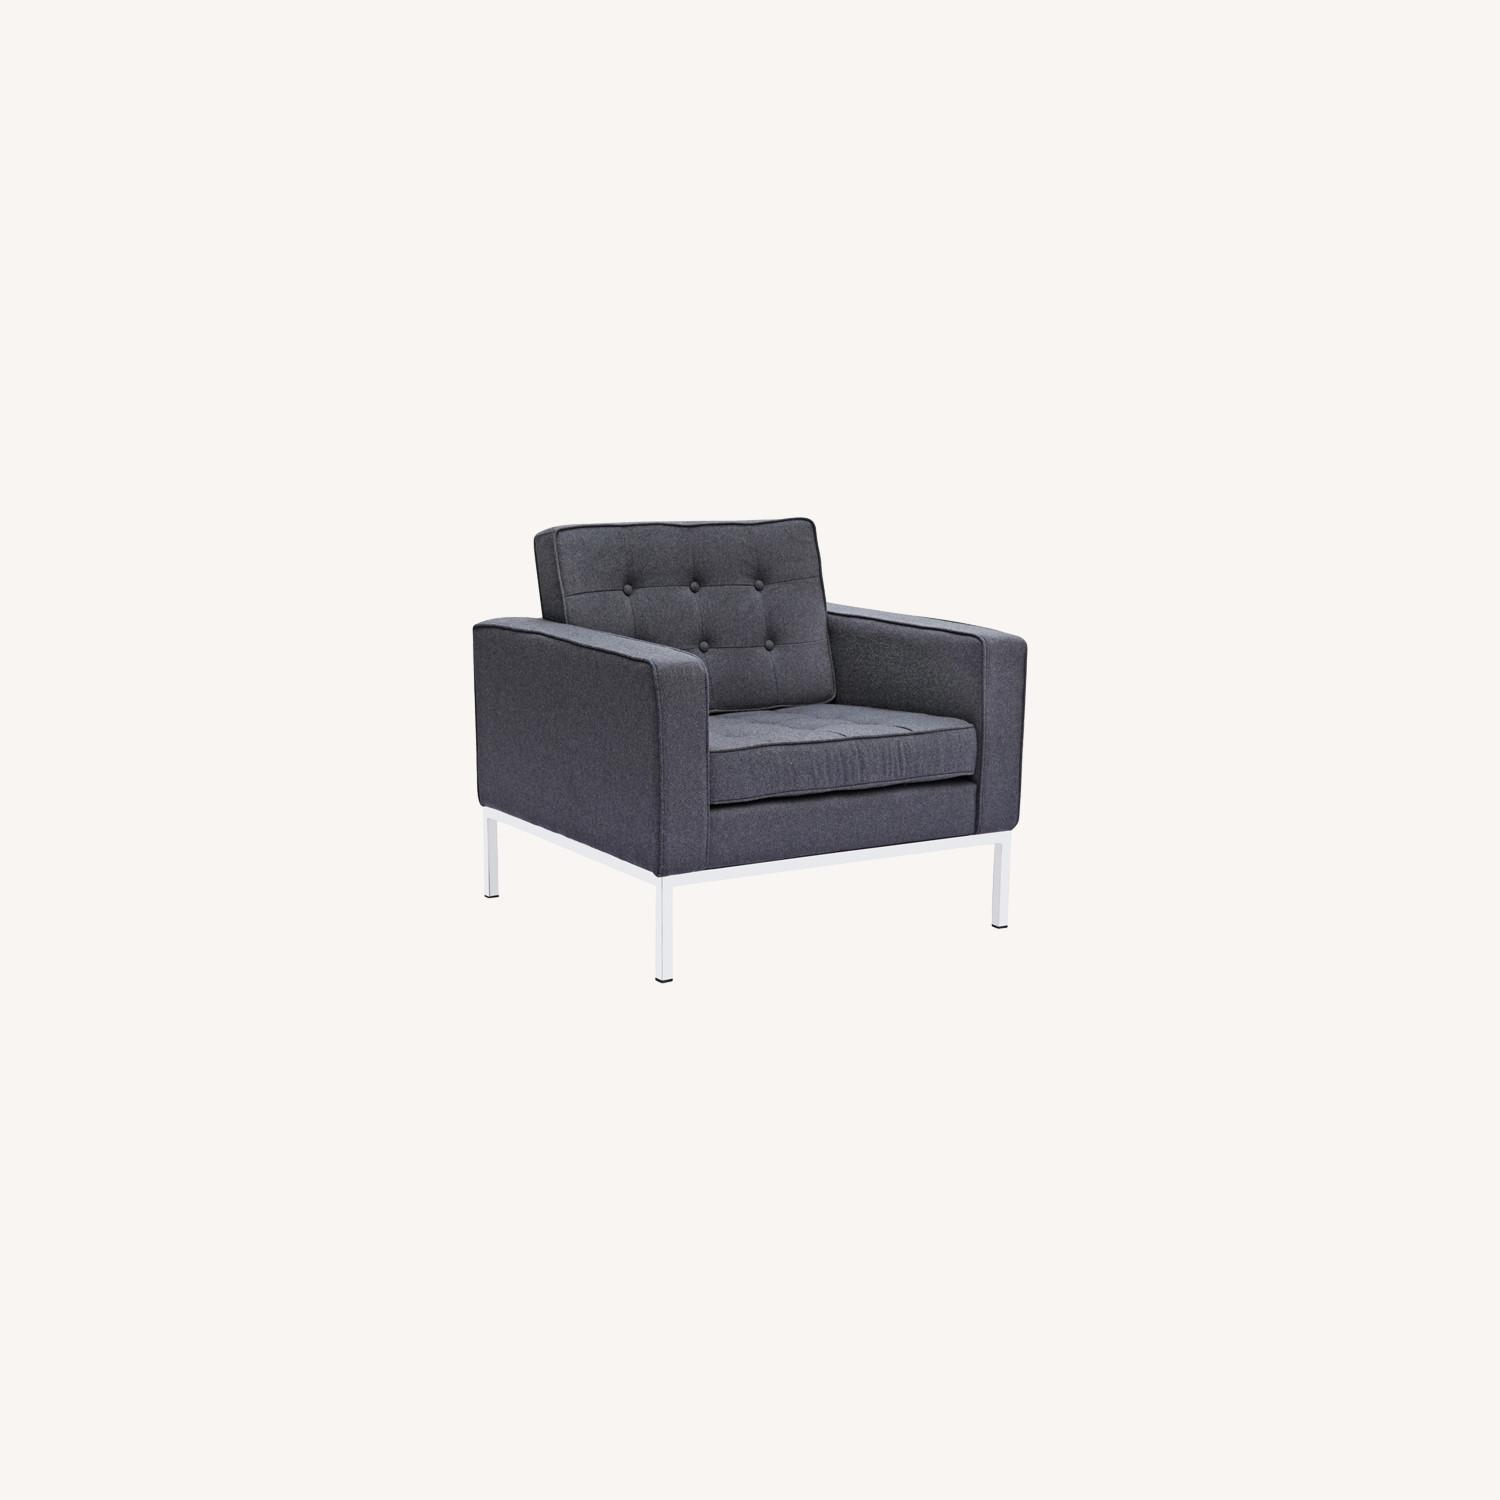 Contemporary Chair In Gray Wool Fabric - image-7